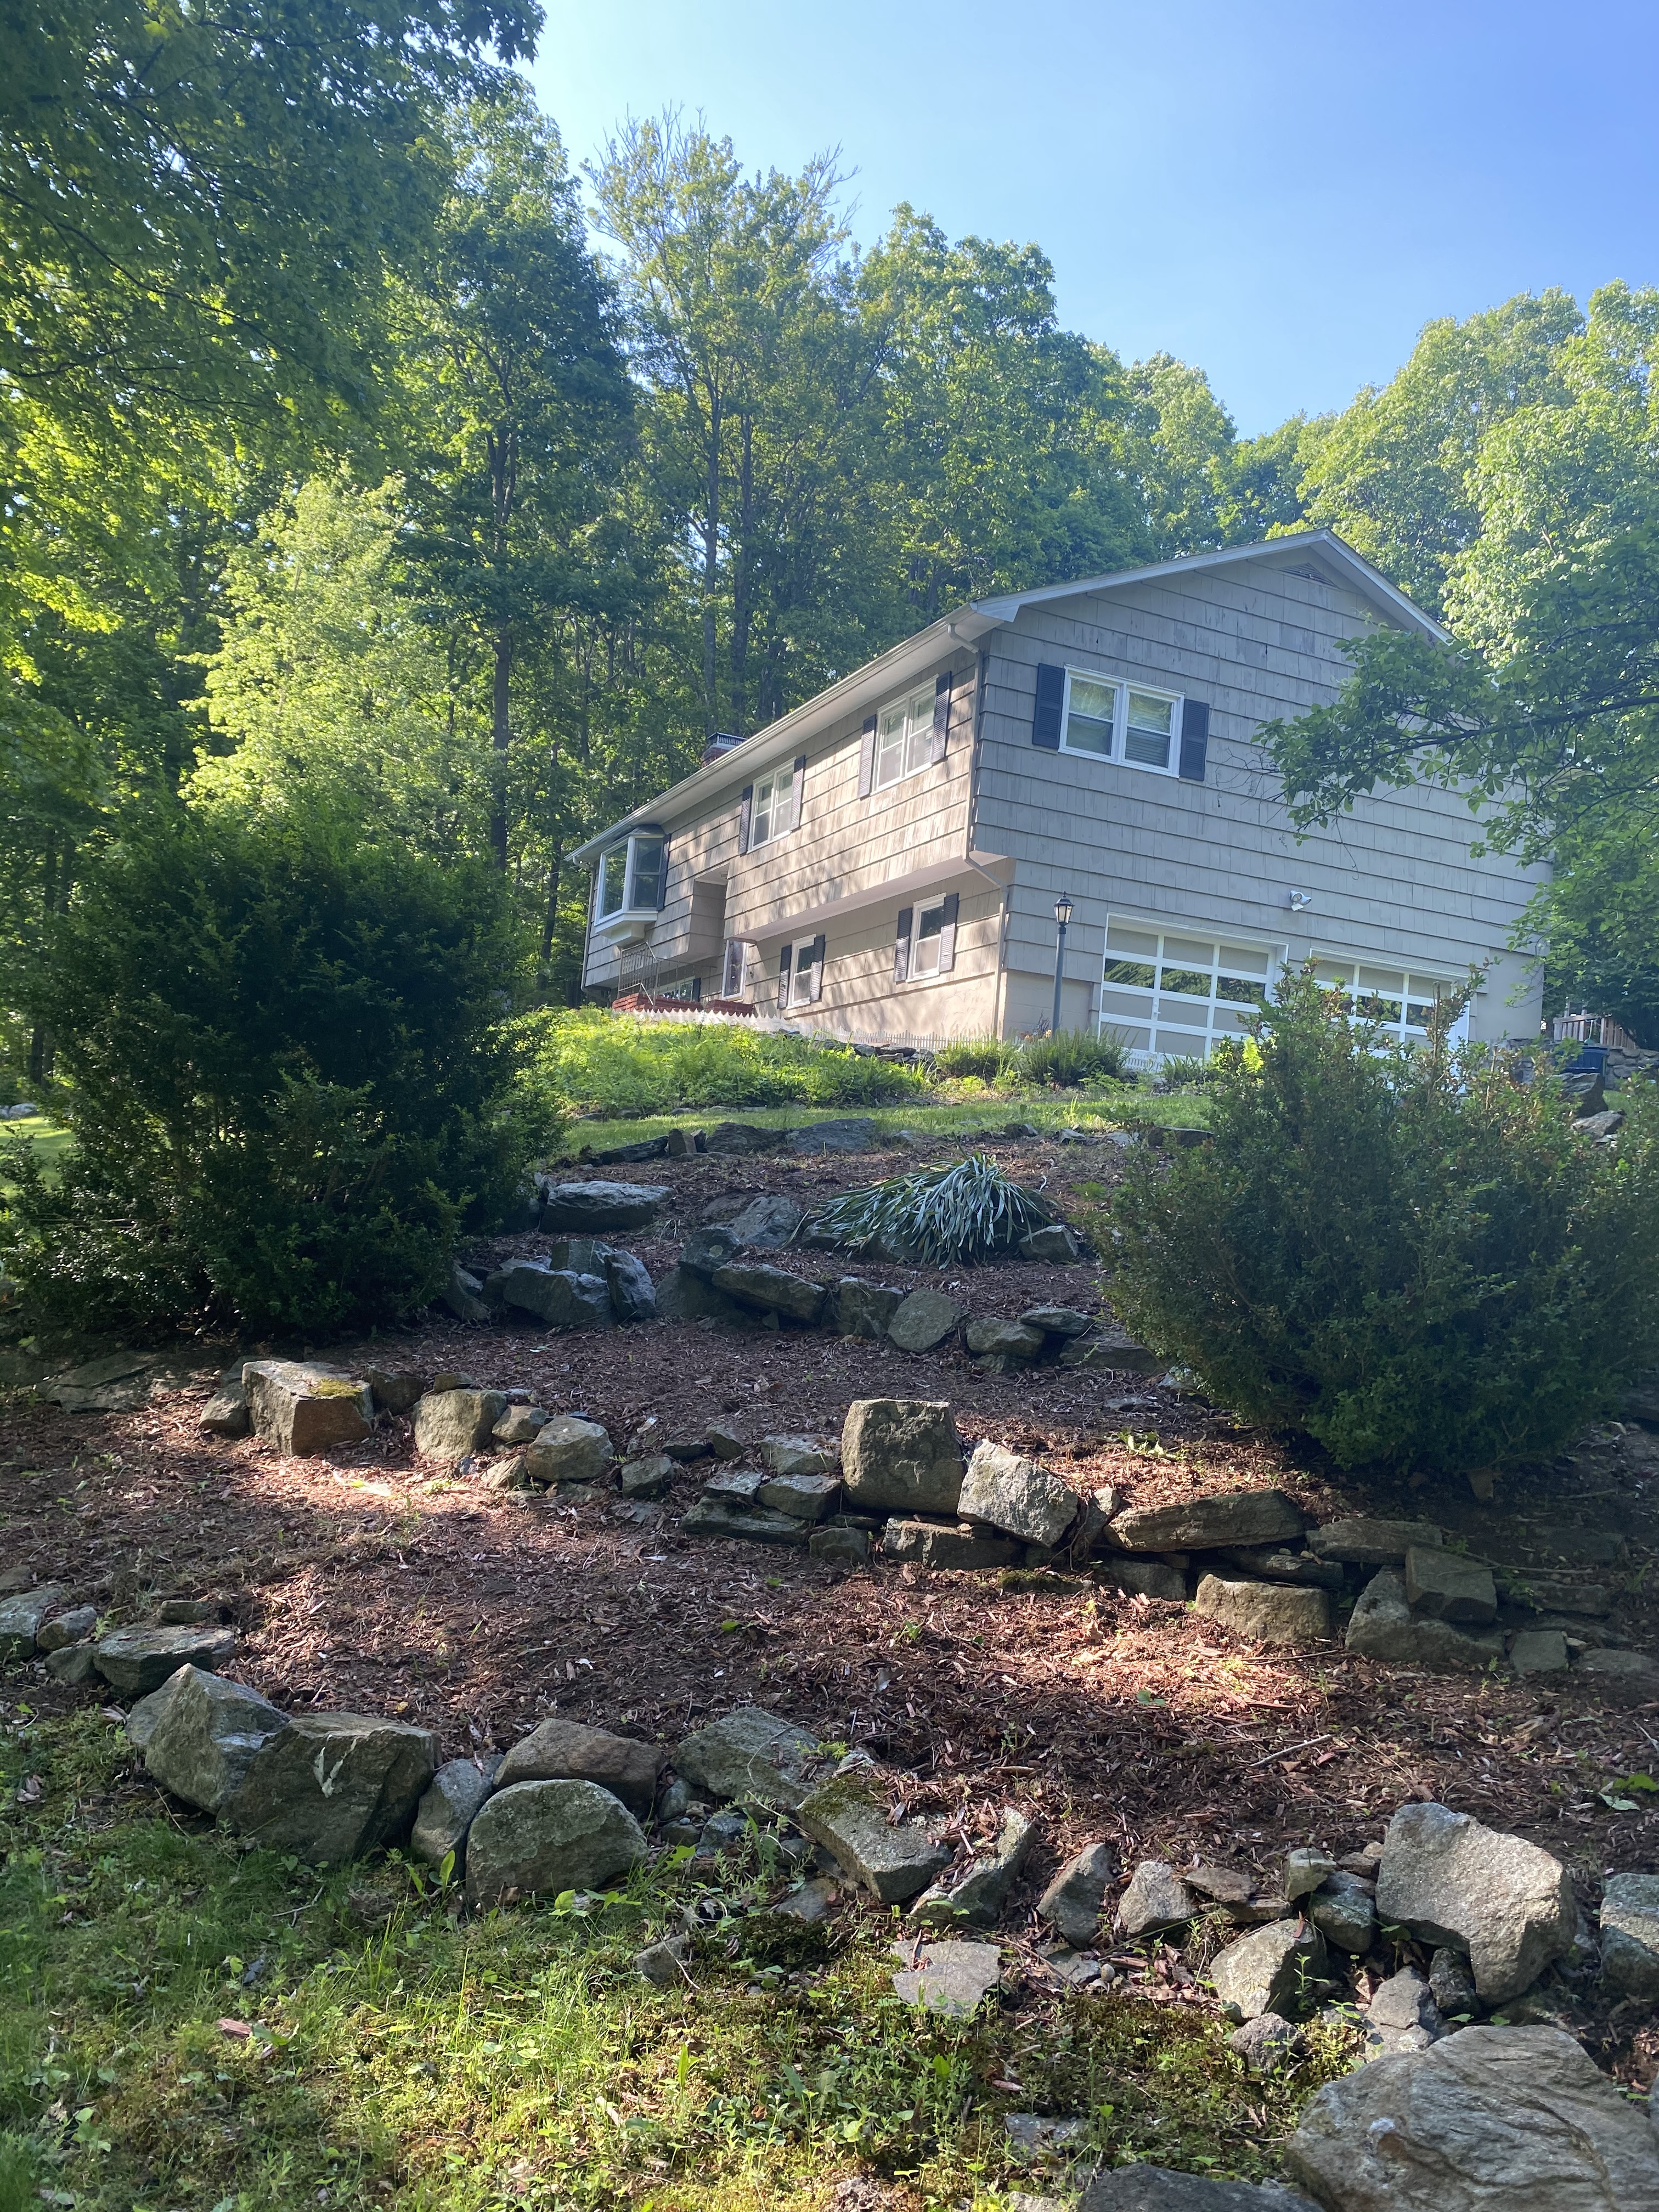 12 Varian Drive, Danbury, CT 06811 | 3 Bed, Single Family Home  For Sale By Owner